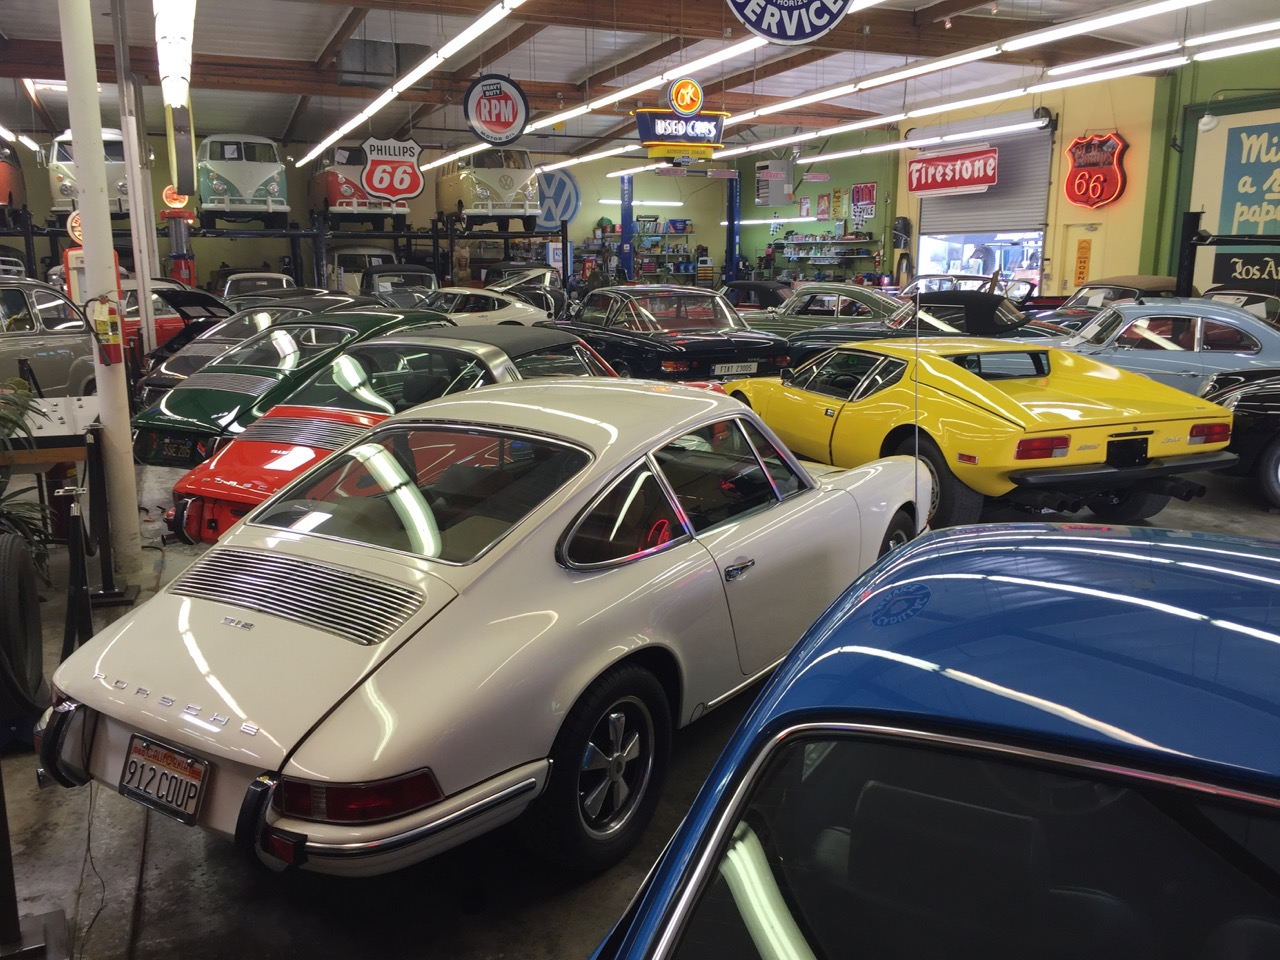 Michael Malamut's collection isn't a museum, but he opens it to car and charity groups | Larry Crane photos